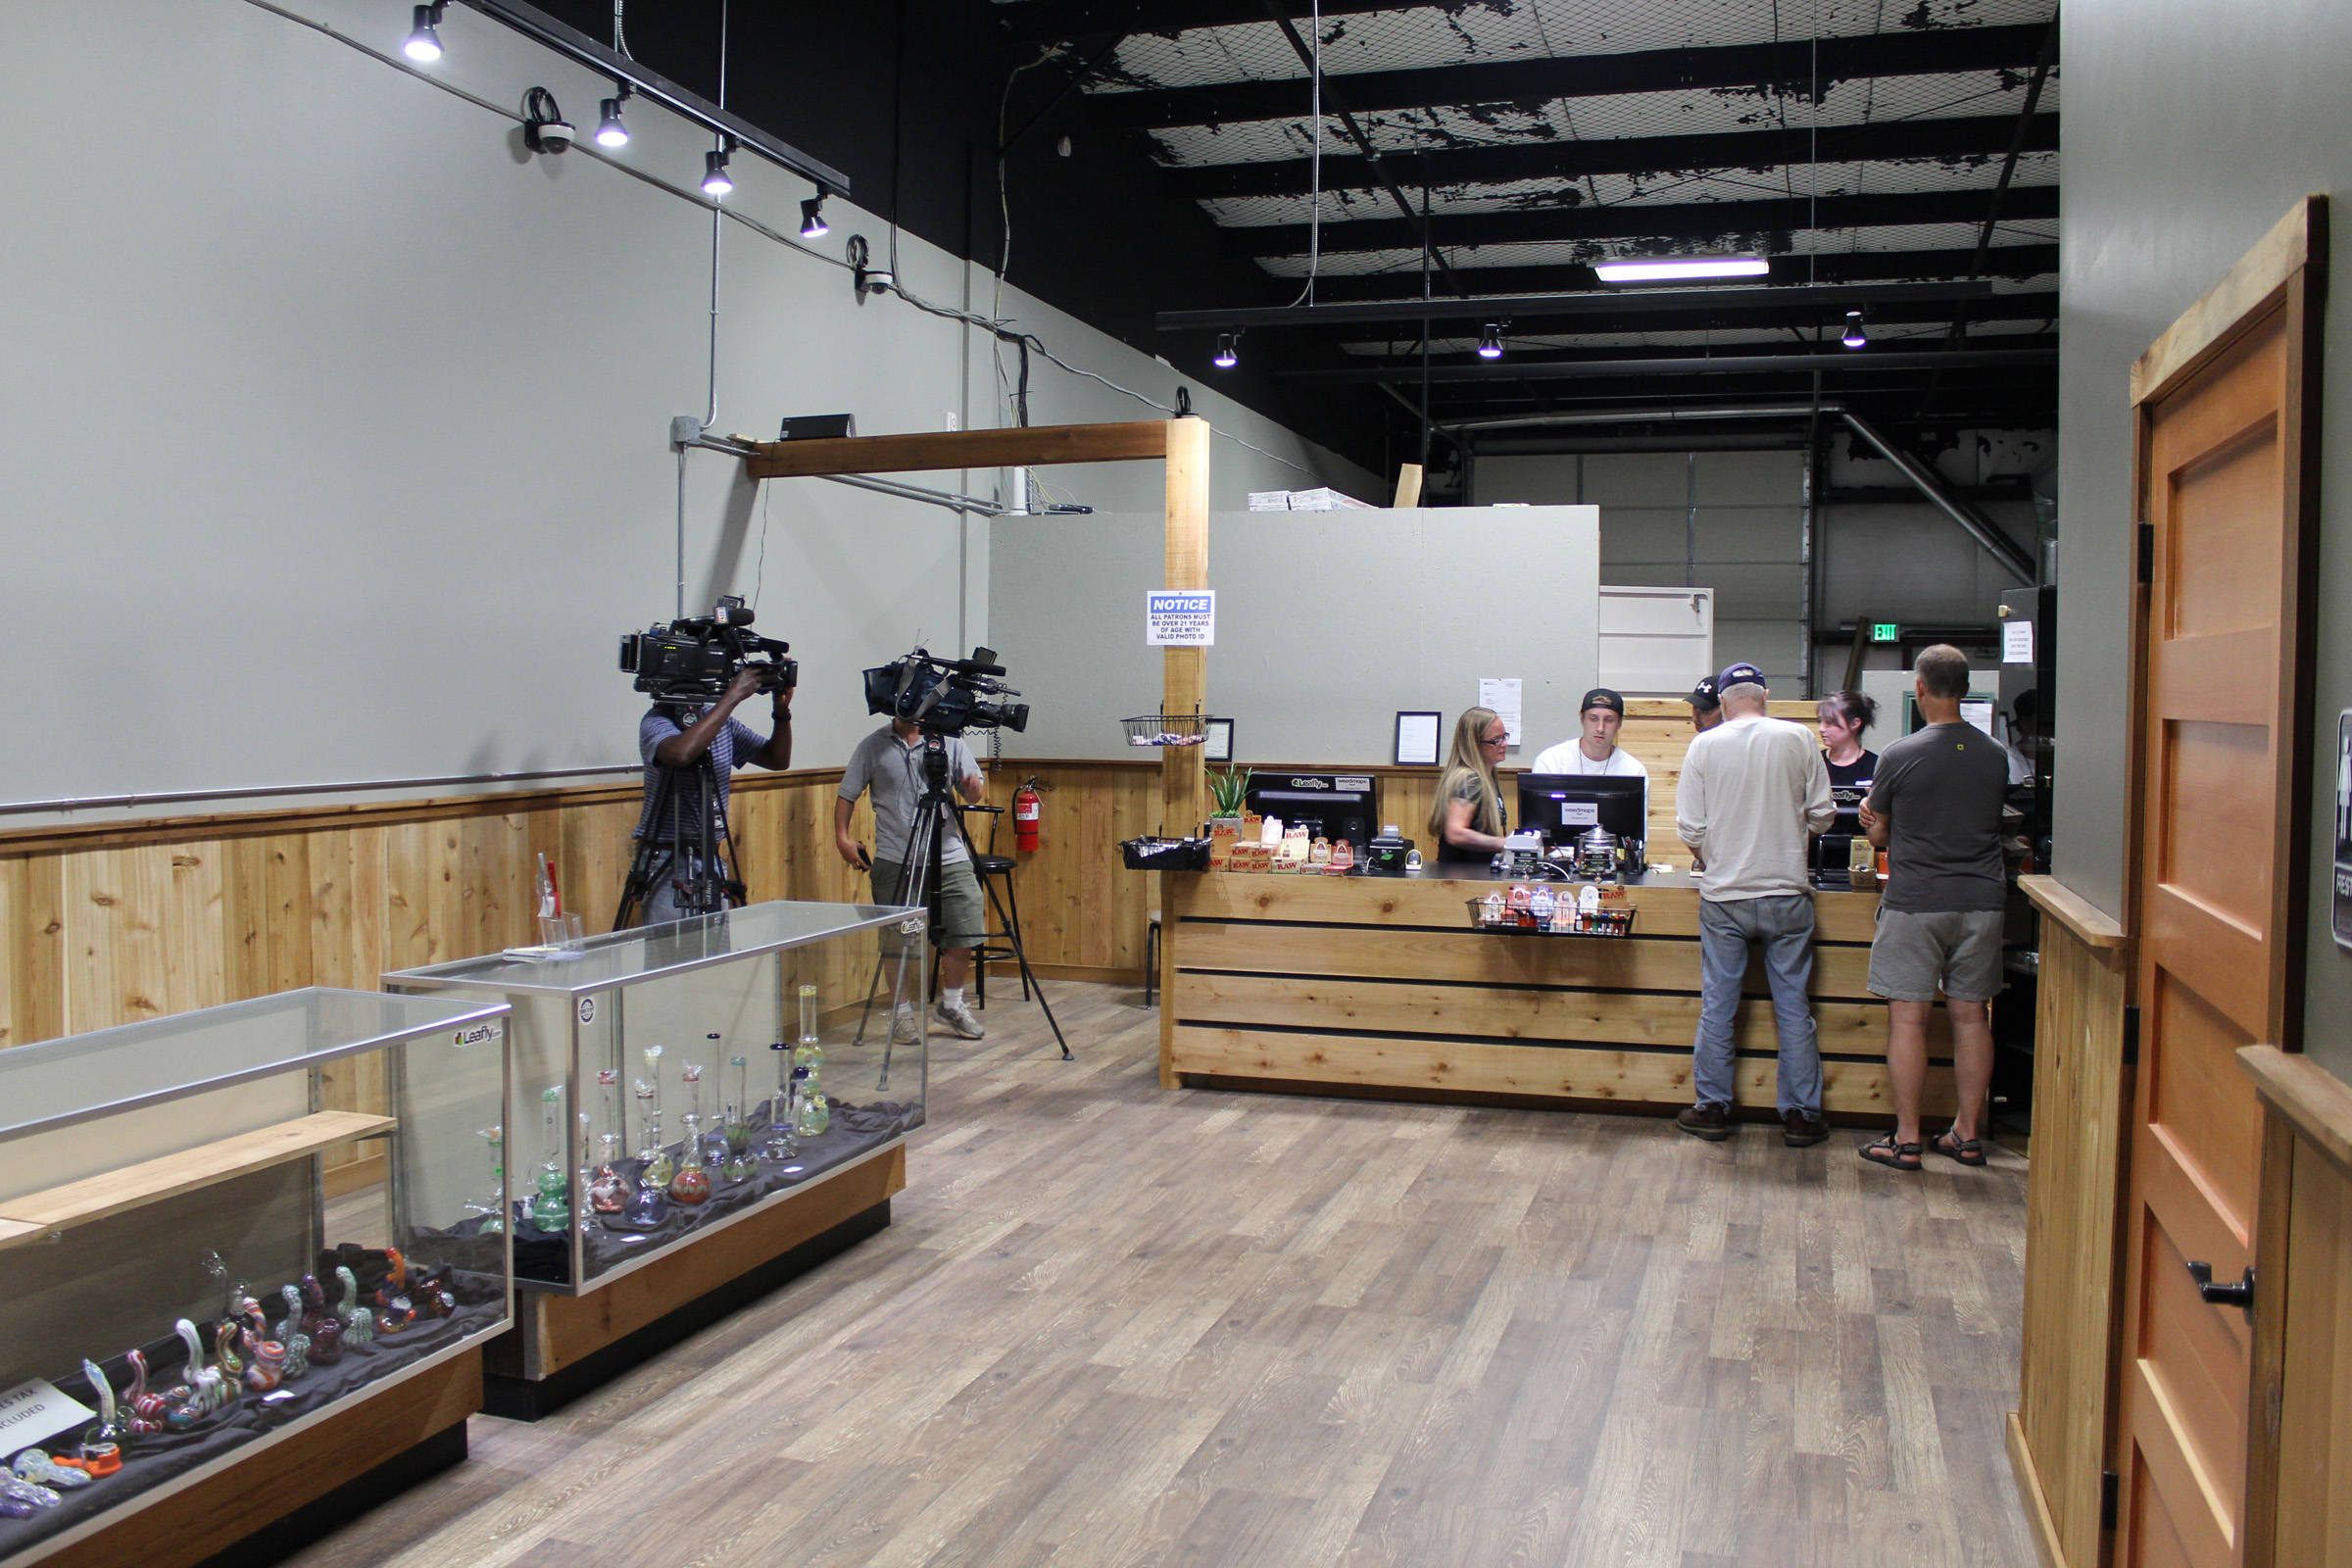 Exclusive: WA Retailer 'Top Shelf Cannabis' Makes History Again with Edibles & Concentrates